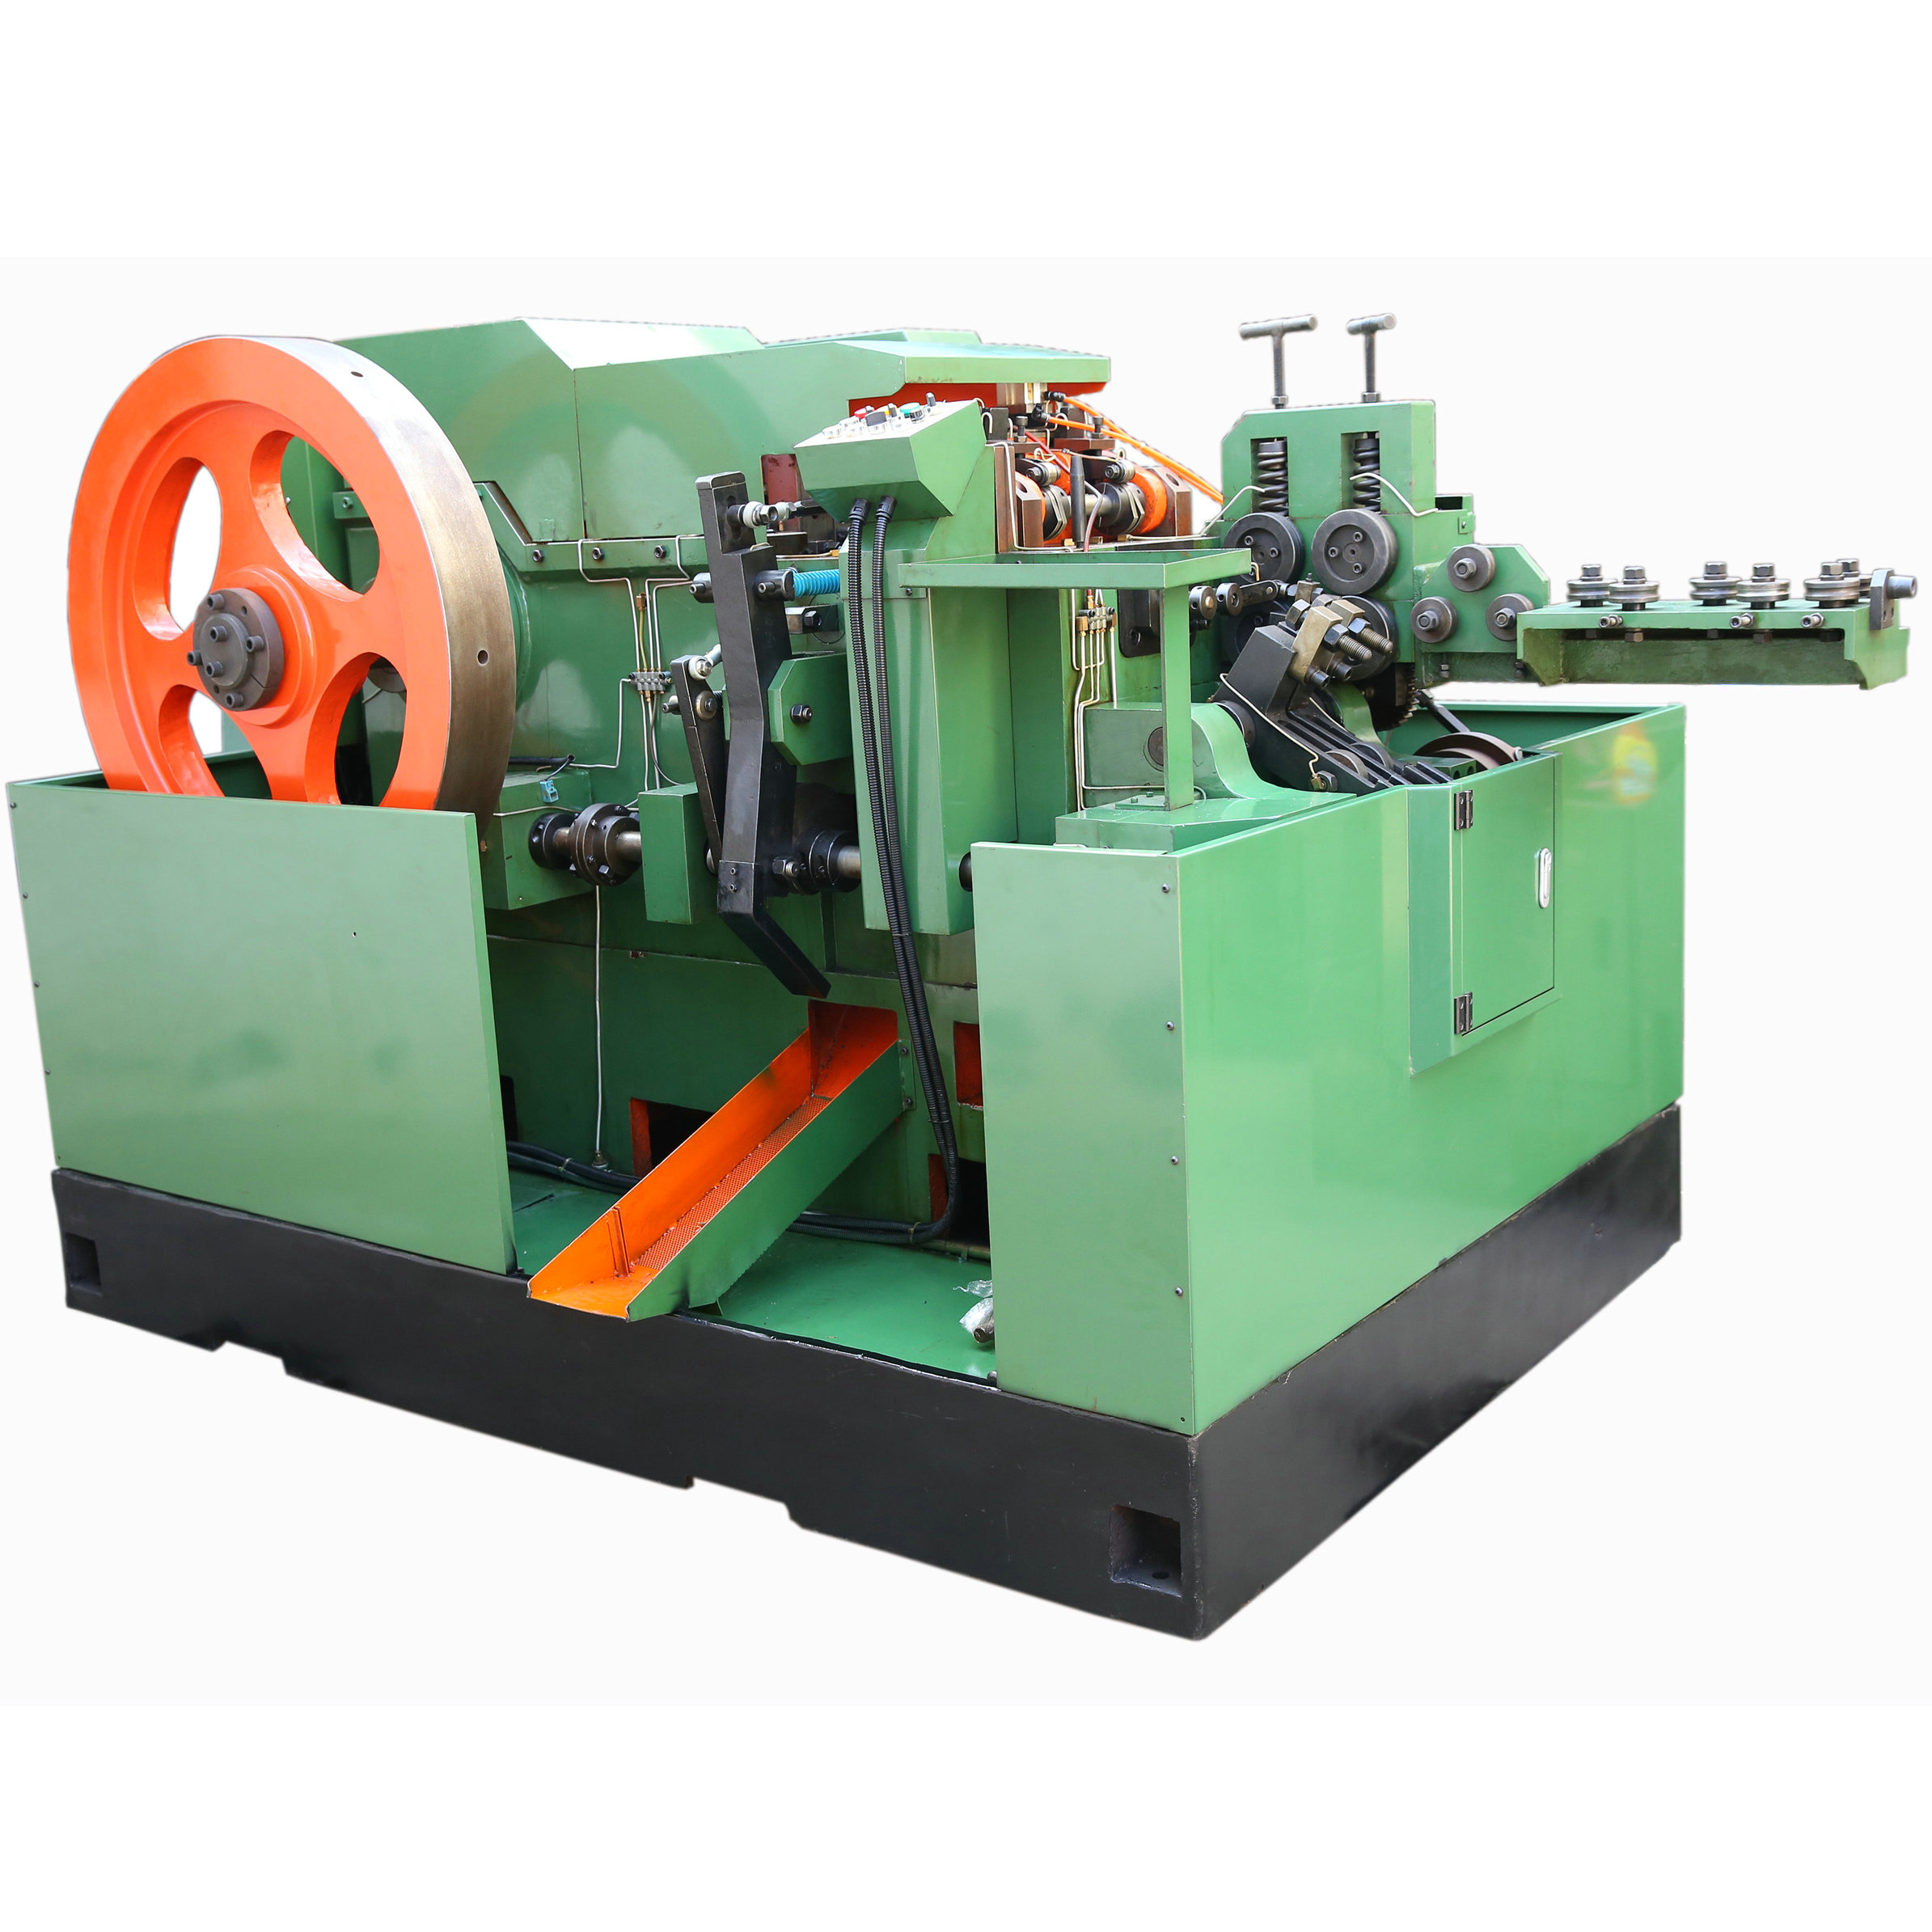 Tx-d20 Automatic 2-die 4-blow Cold Forging Screw Bolt & Charger Pin Making  Machine - Buy Bolt Machine,Screw Bolt Making Machine,Charger Pin Making  Machine Product on Alibaba.com